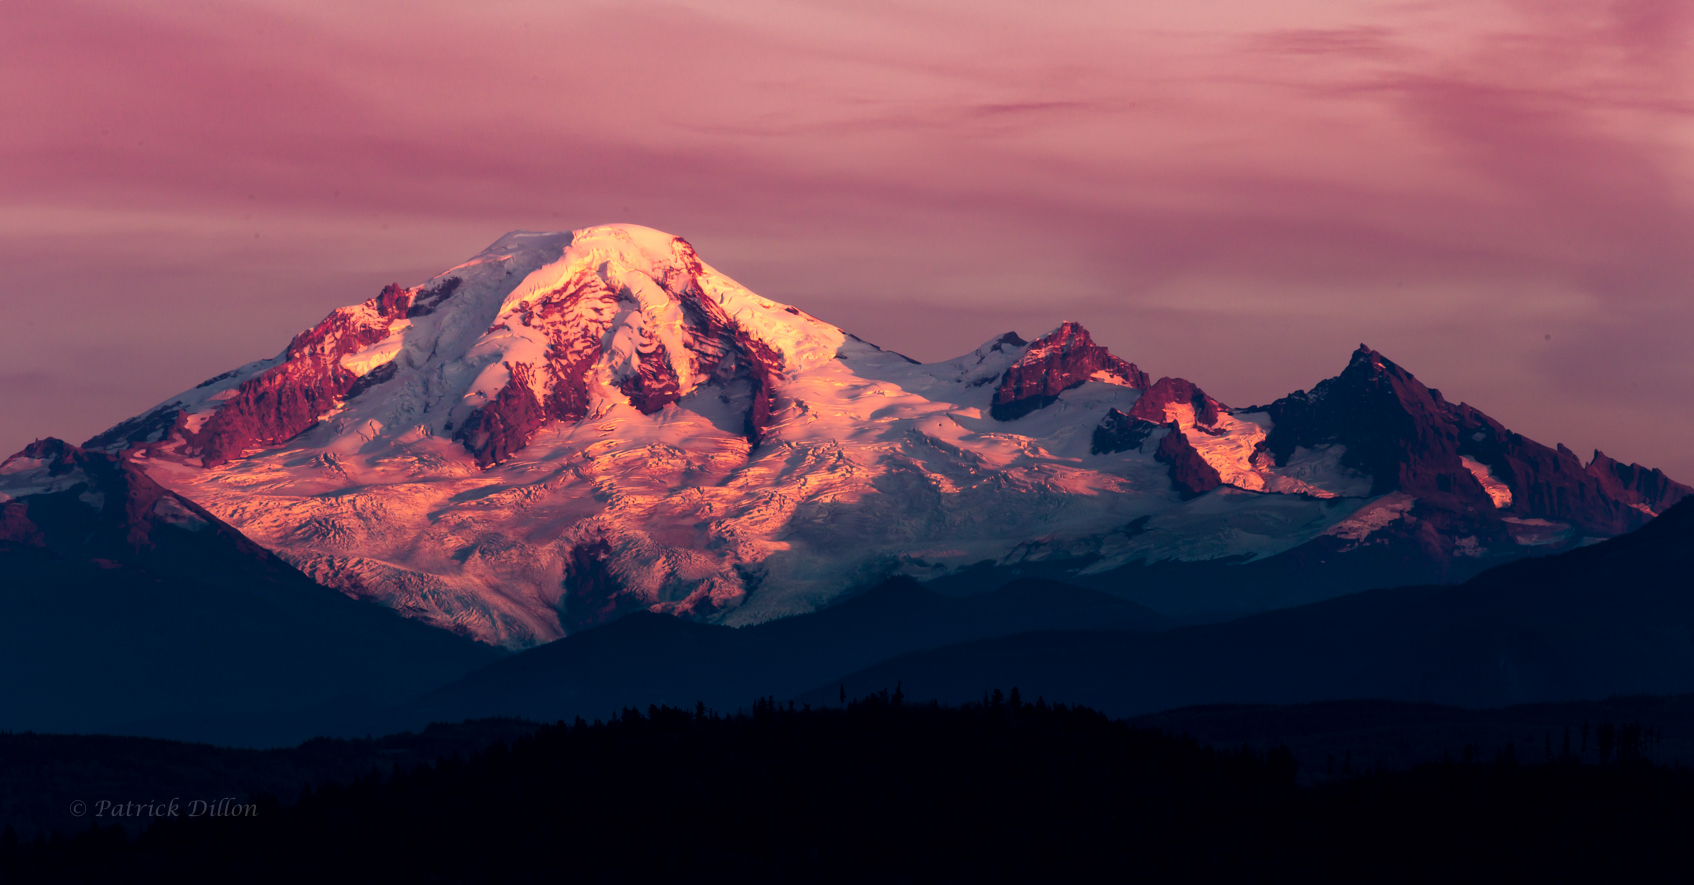 Mt Baker sunset seen from bc canada